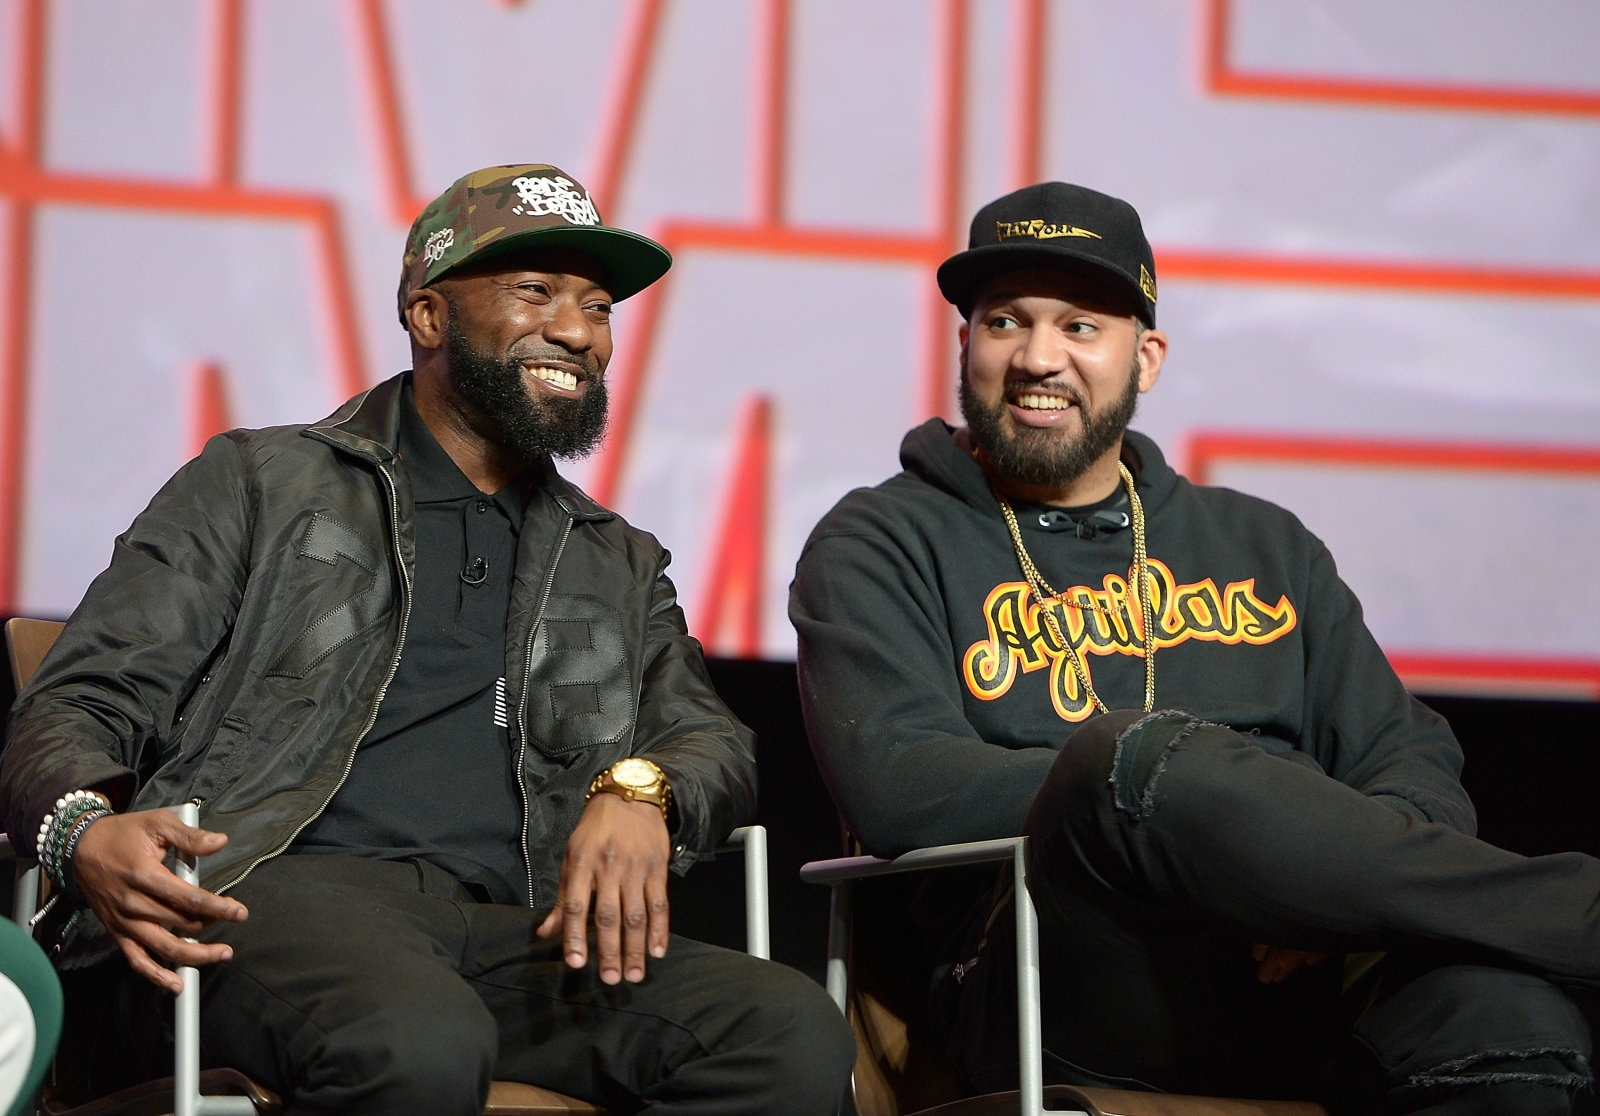 Desus and Mero to host Showtime's first weekly late-night talk show | DeviceDaily.com